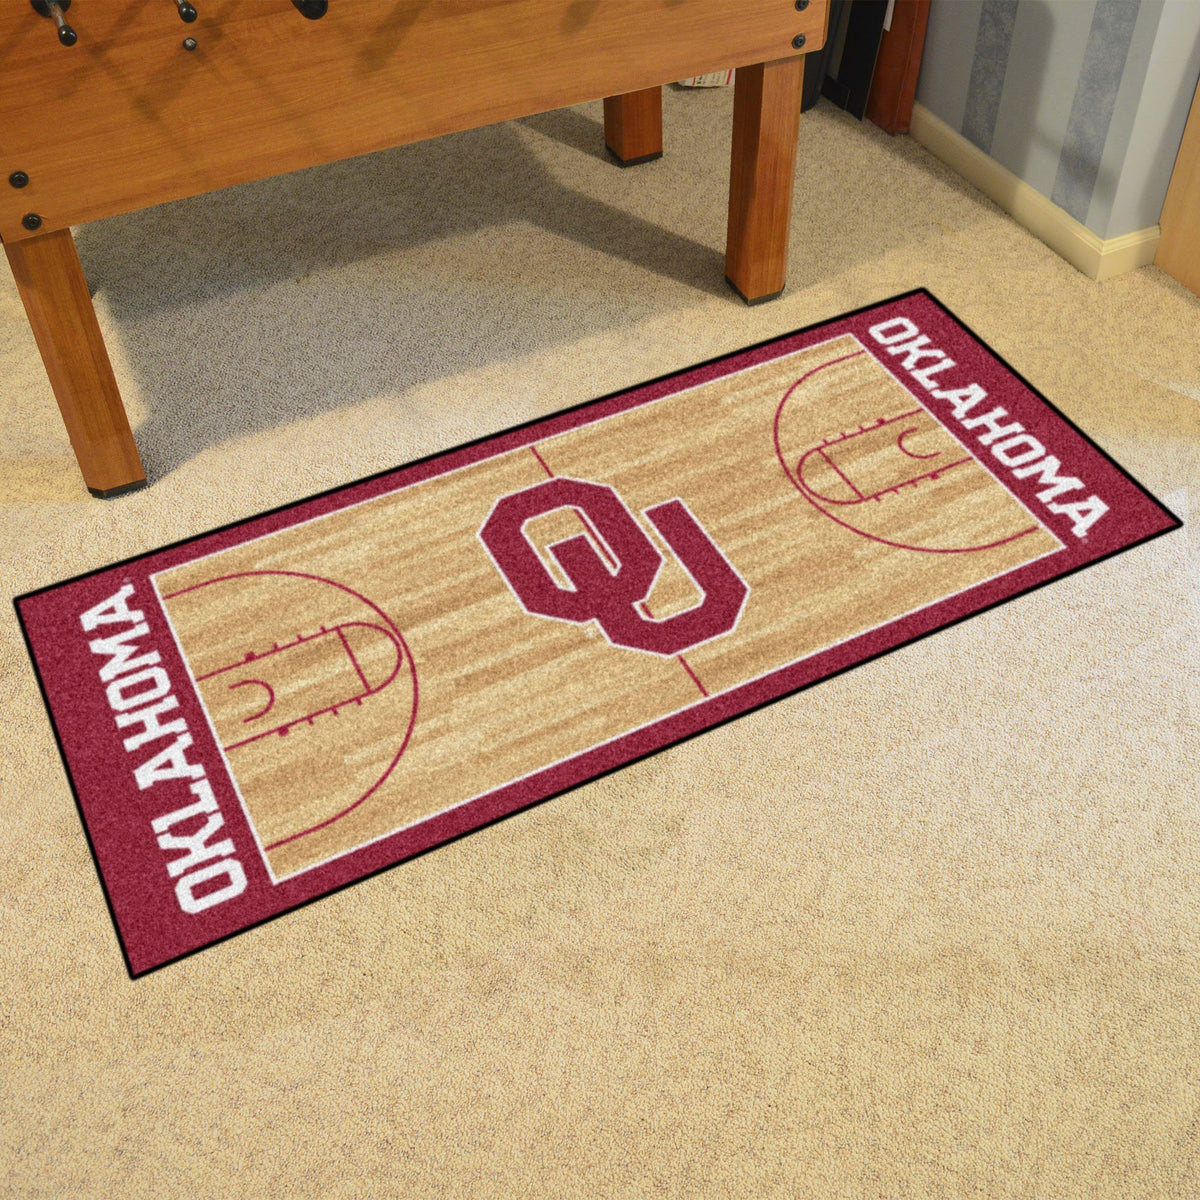 Collegiate - NCAA Basketball Runner Collegiate Mats, Rectangular Mats, NCAA Basketball Runner, Collegiate, Home Fan Mats Oklahoma